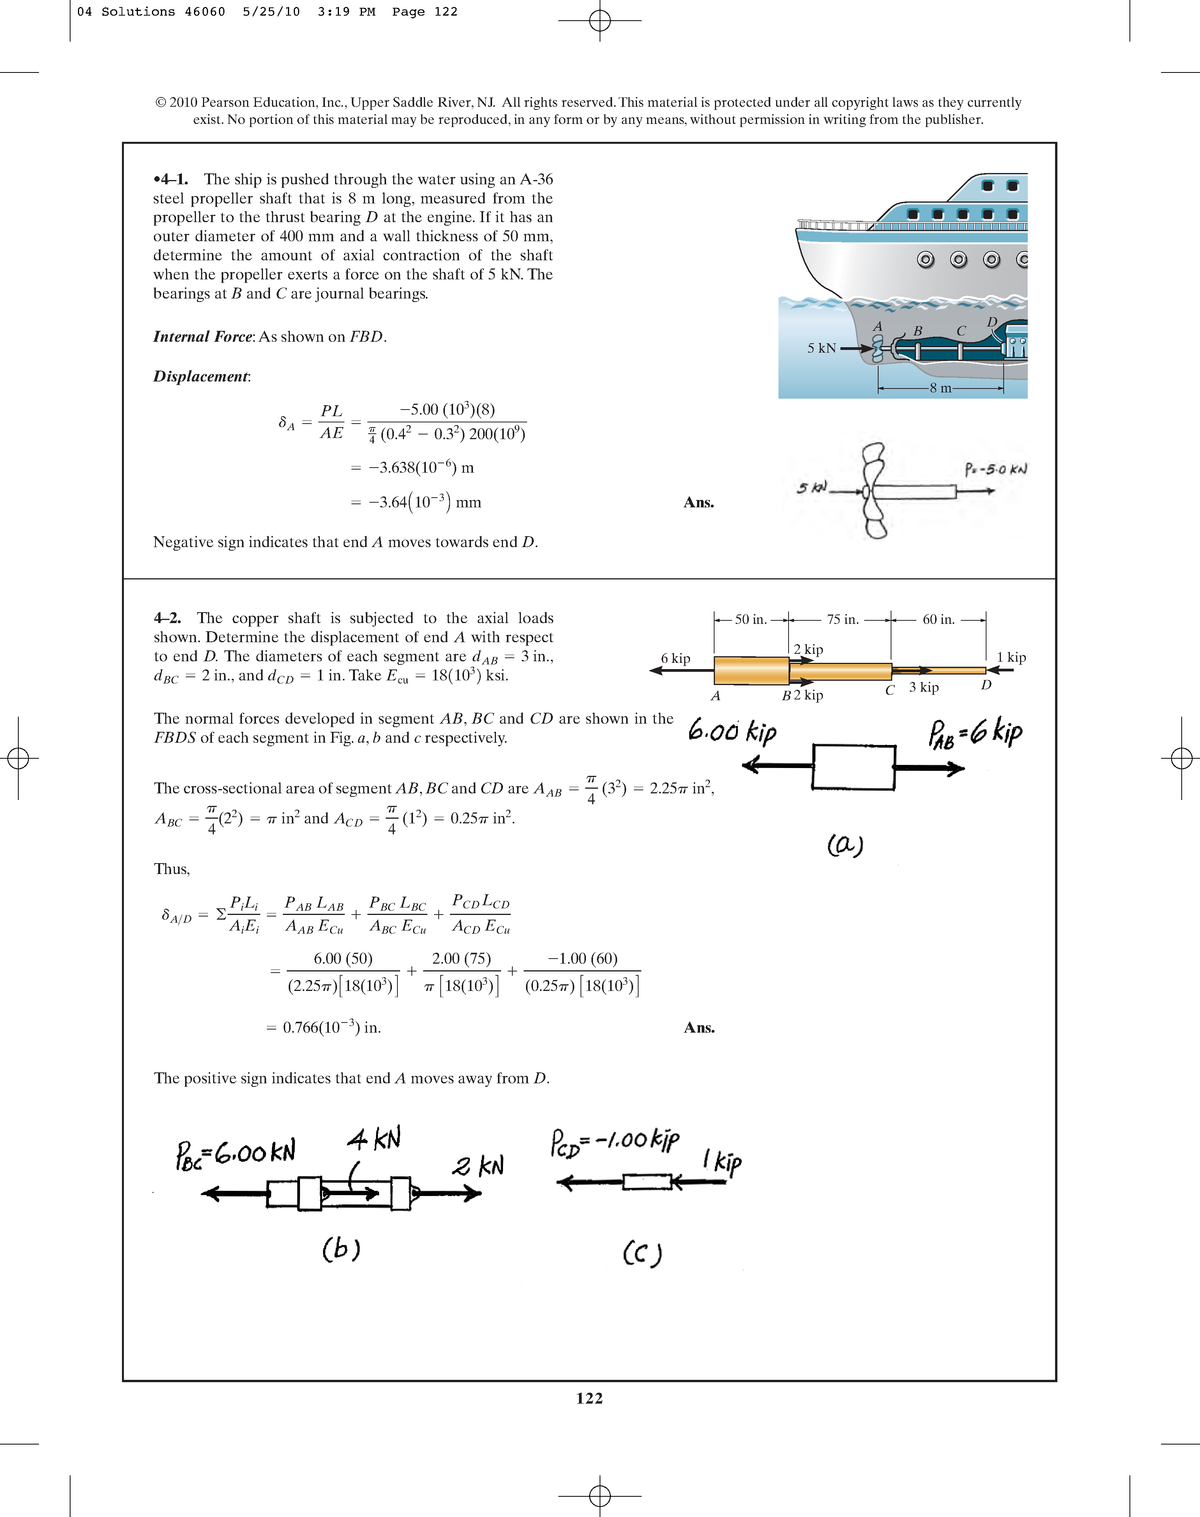 Chapter 04 - Solution manual Mechanics of Materials - MOM